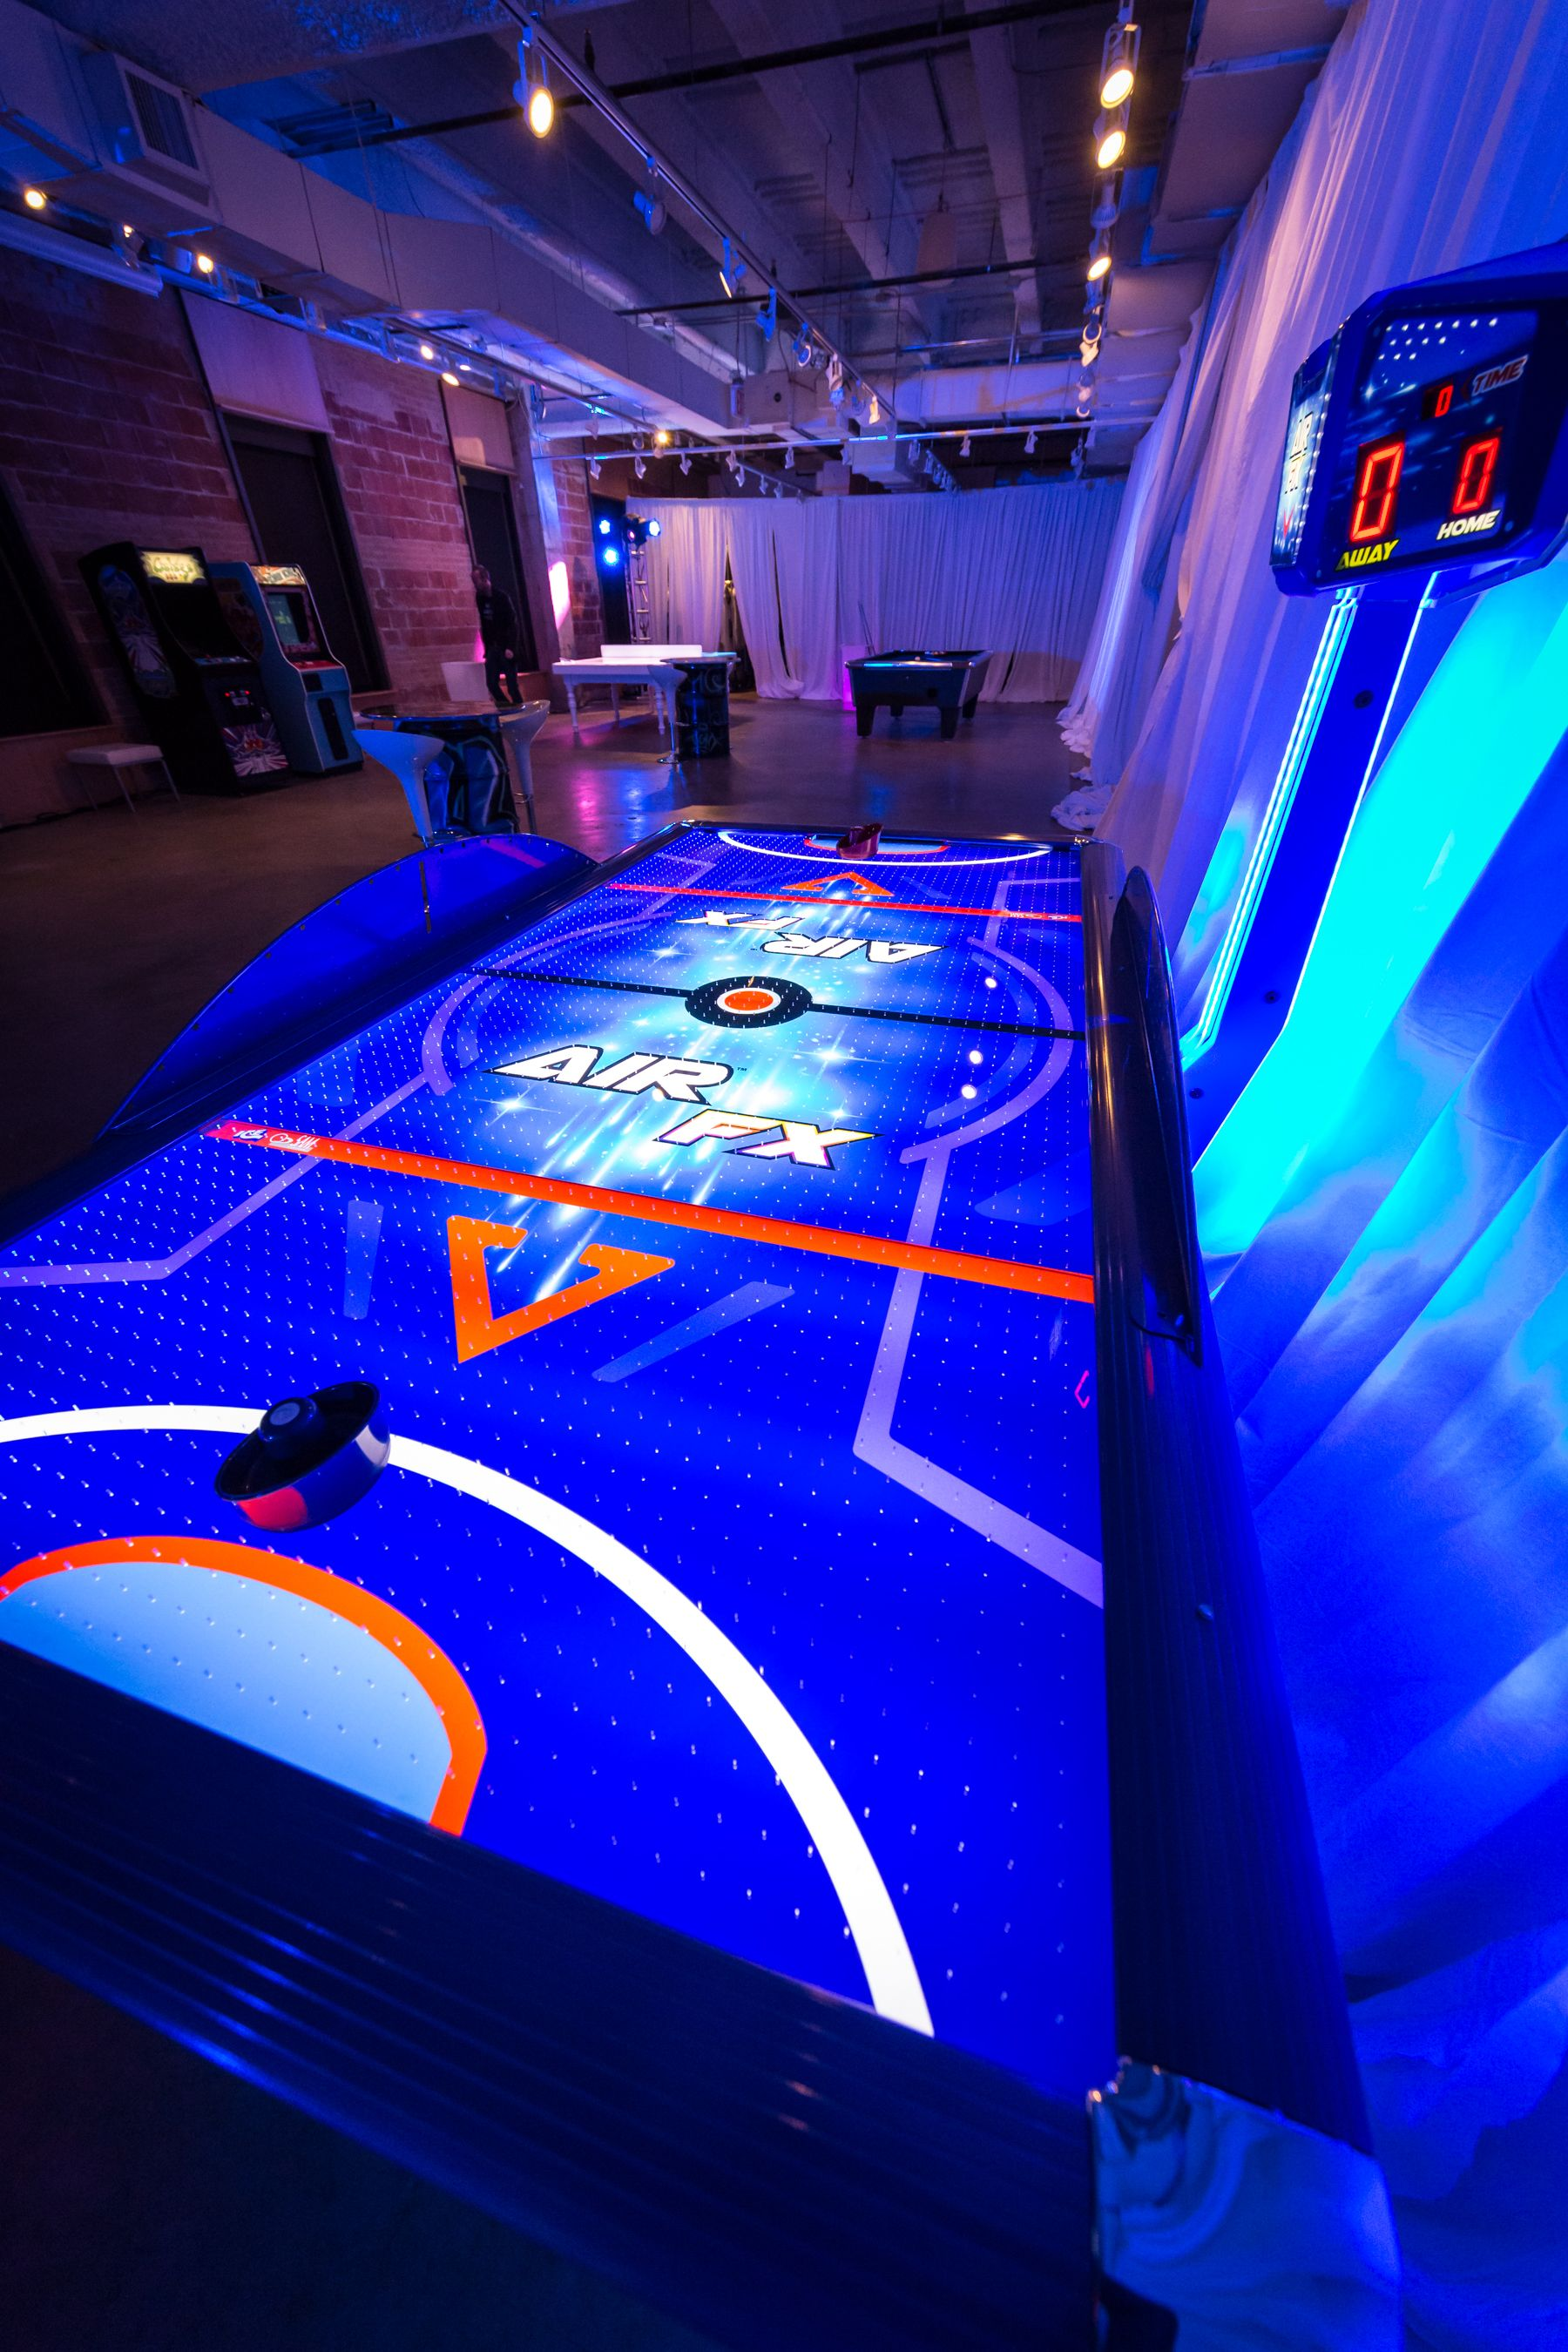 Led Air Hockey Table Air Hockey Table Air Hockey Video Game Rooms